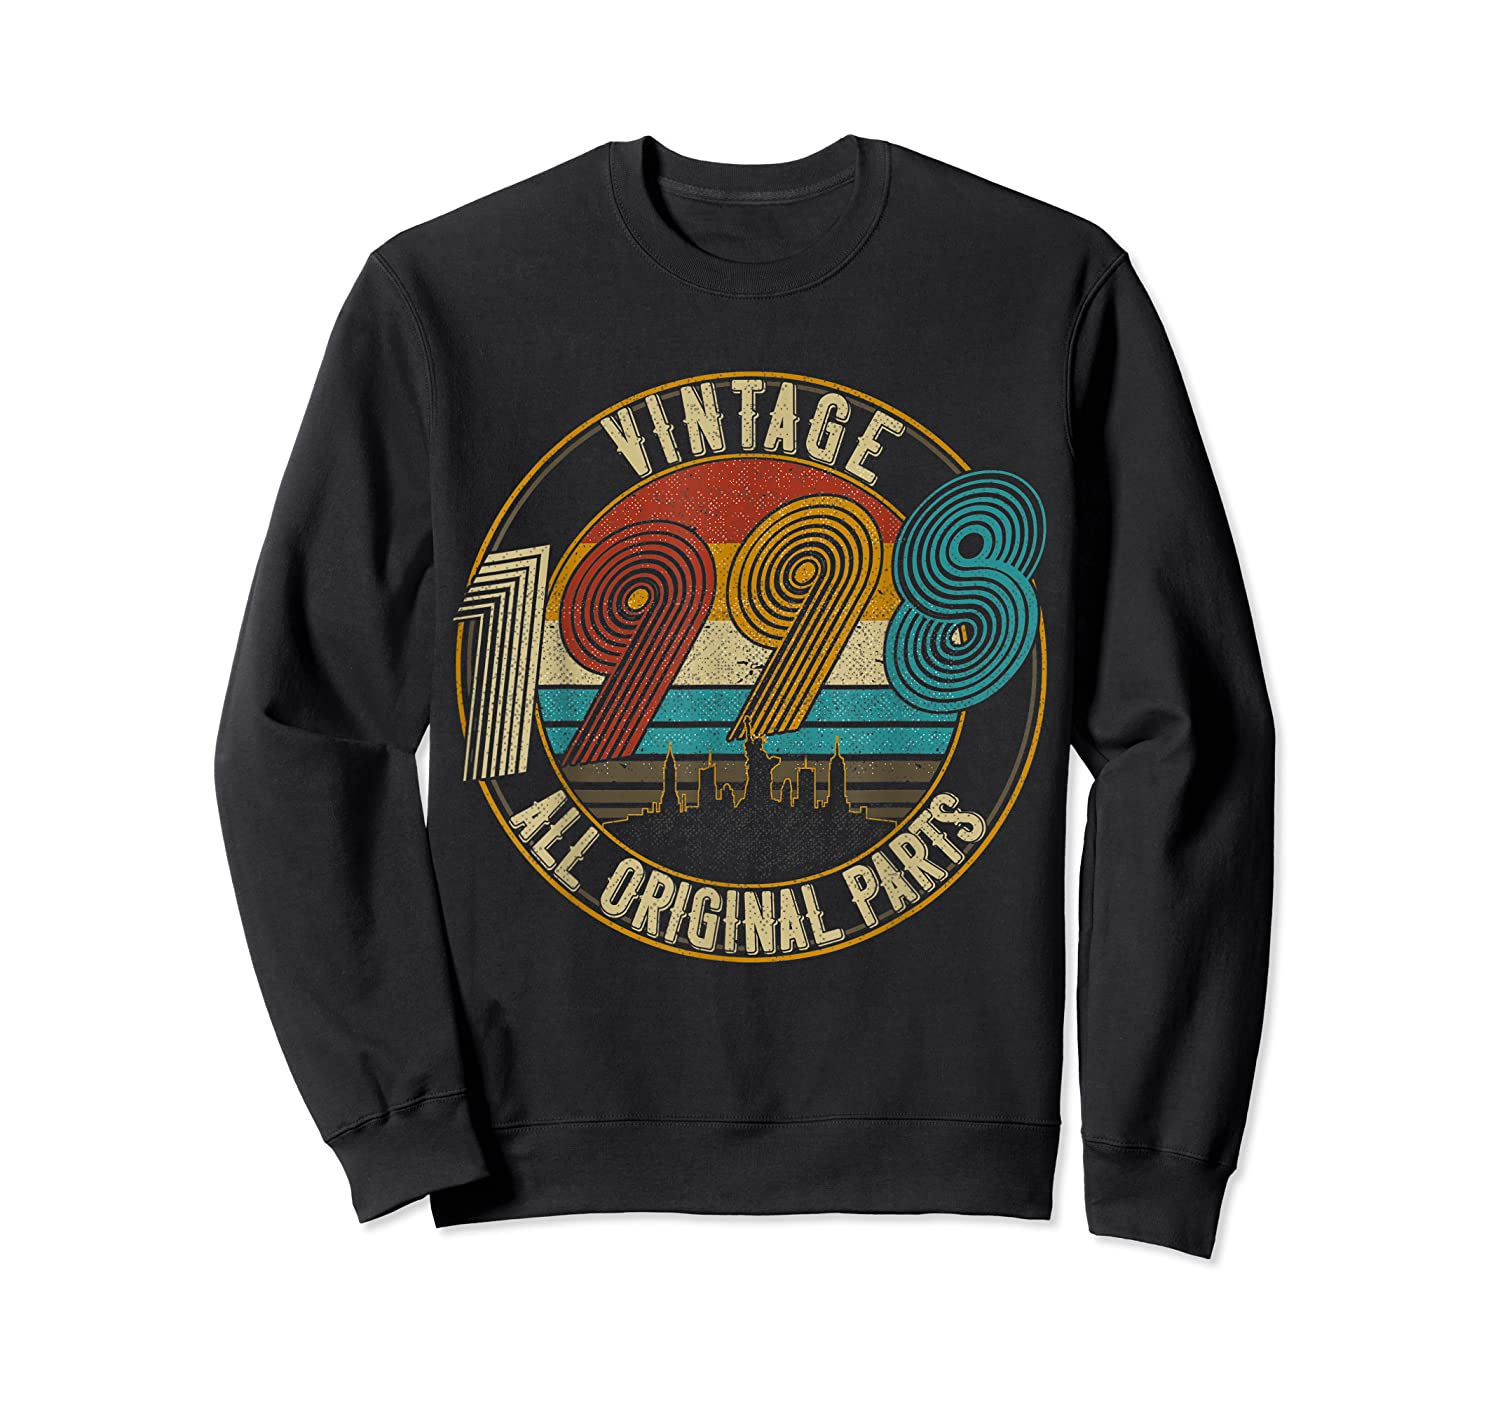 Vintage 21st Birthday Gift Shirt For Classic 1998 T-shirt Crewneck Sweater